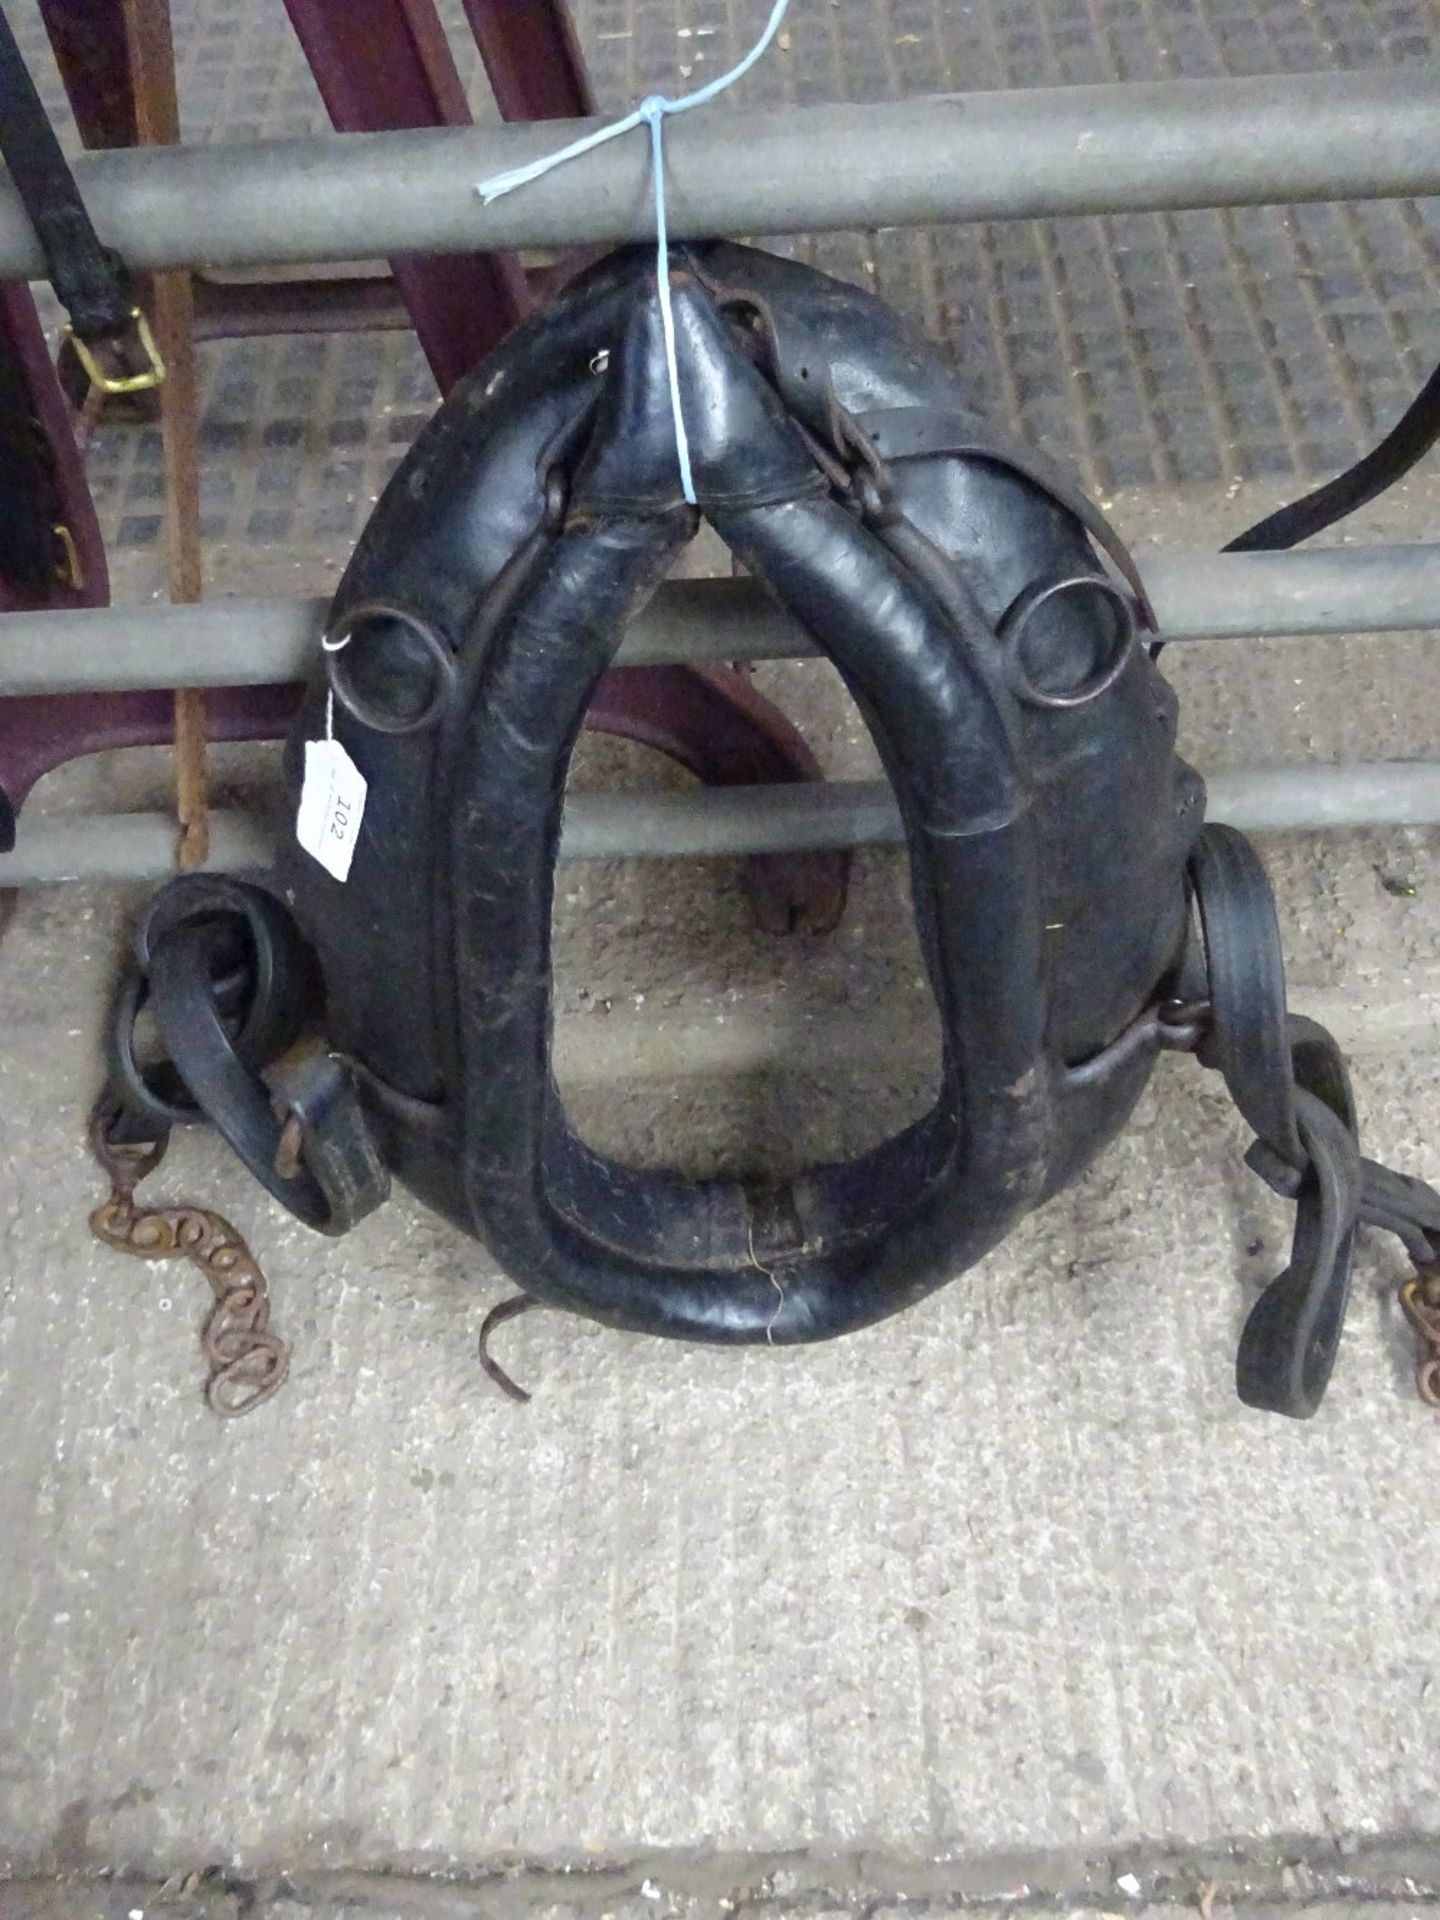 Set of working harness.,collar size approx. 20 x 9 inches. - Image 2 of 4